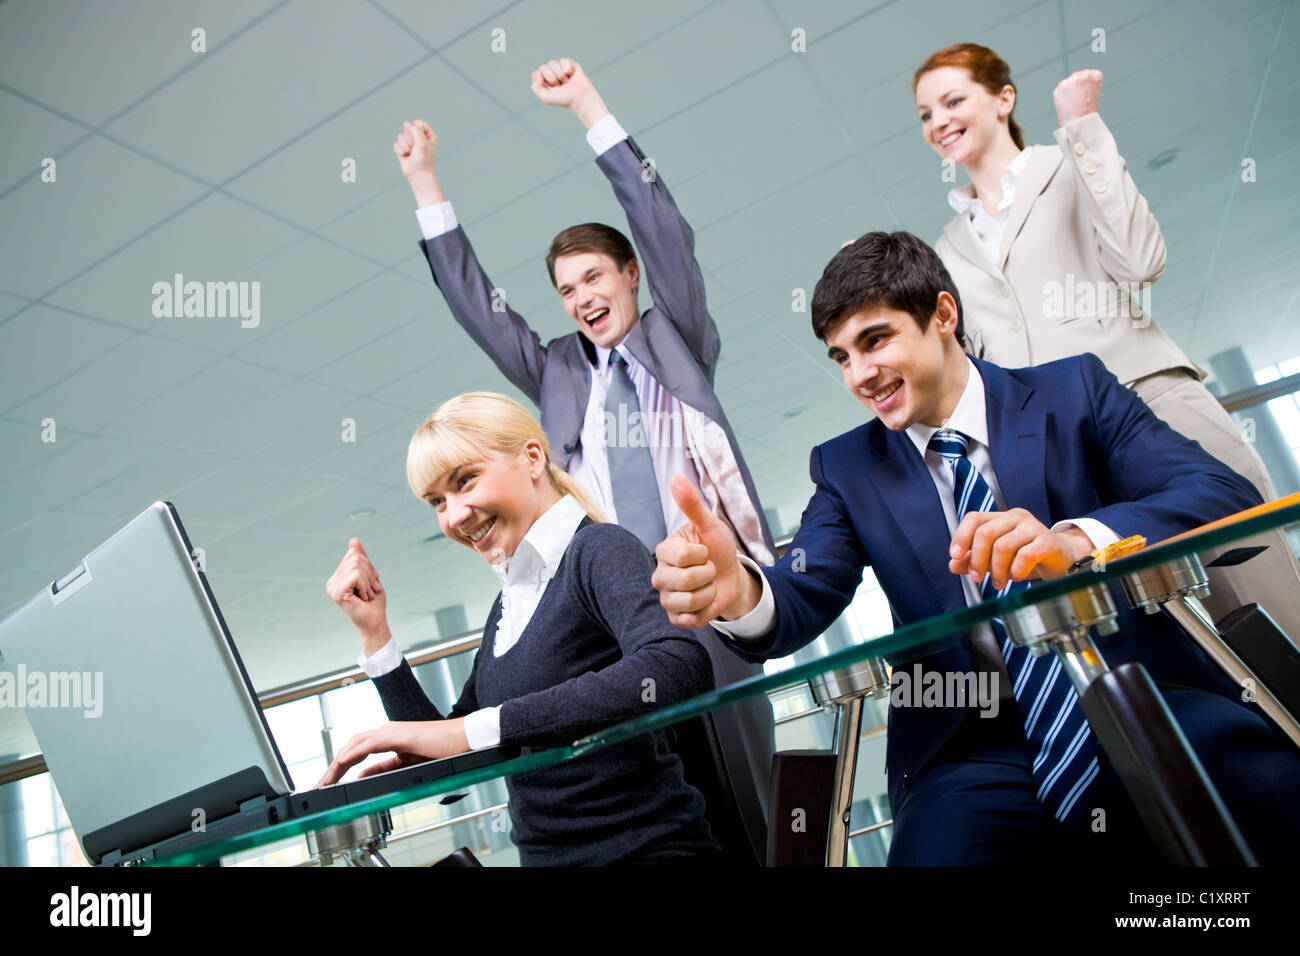 Group of co-workers looking at laptop monitor with expression of gladness - Stock Image